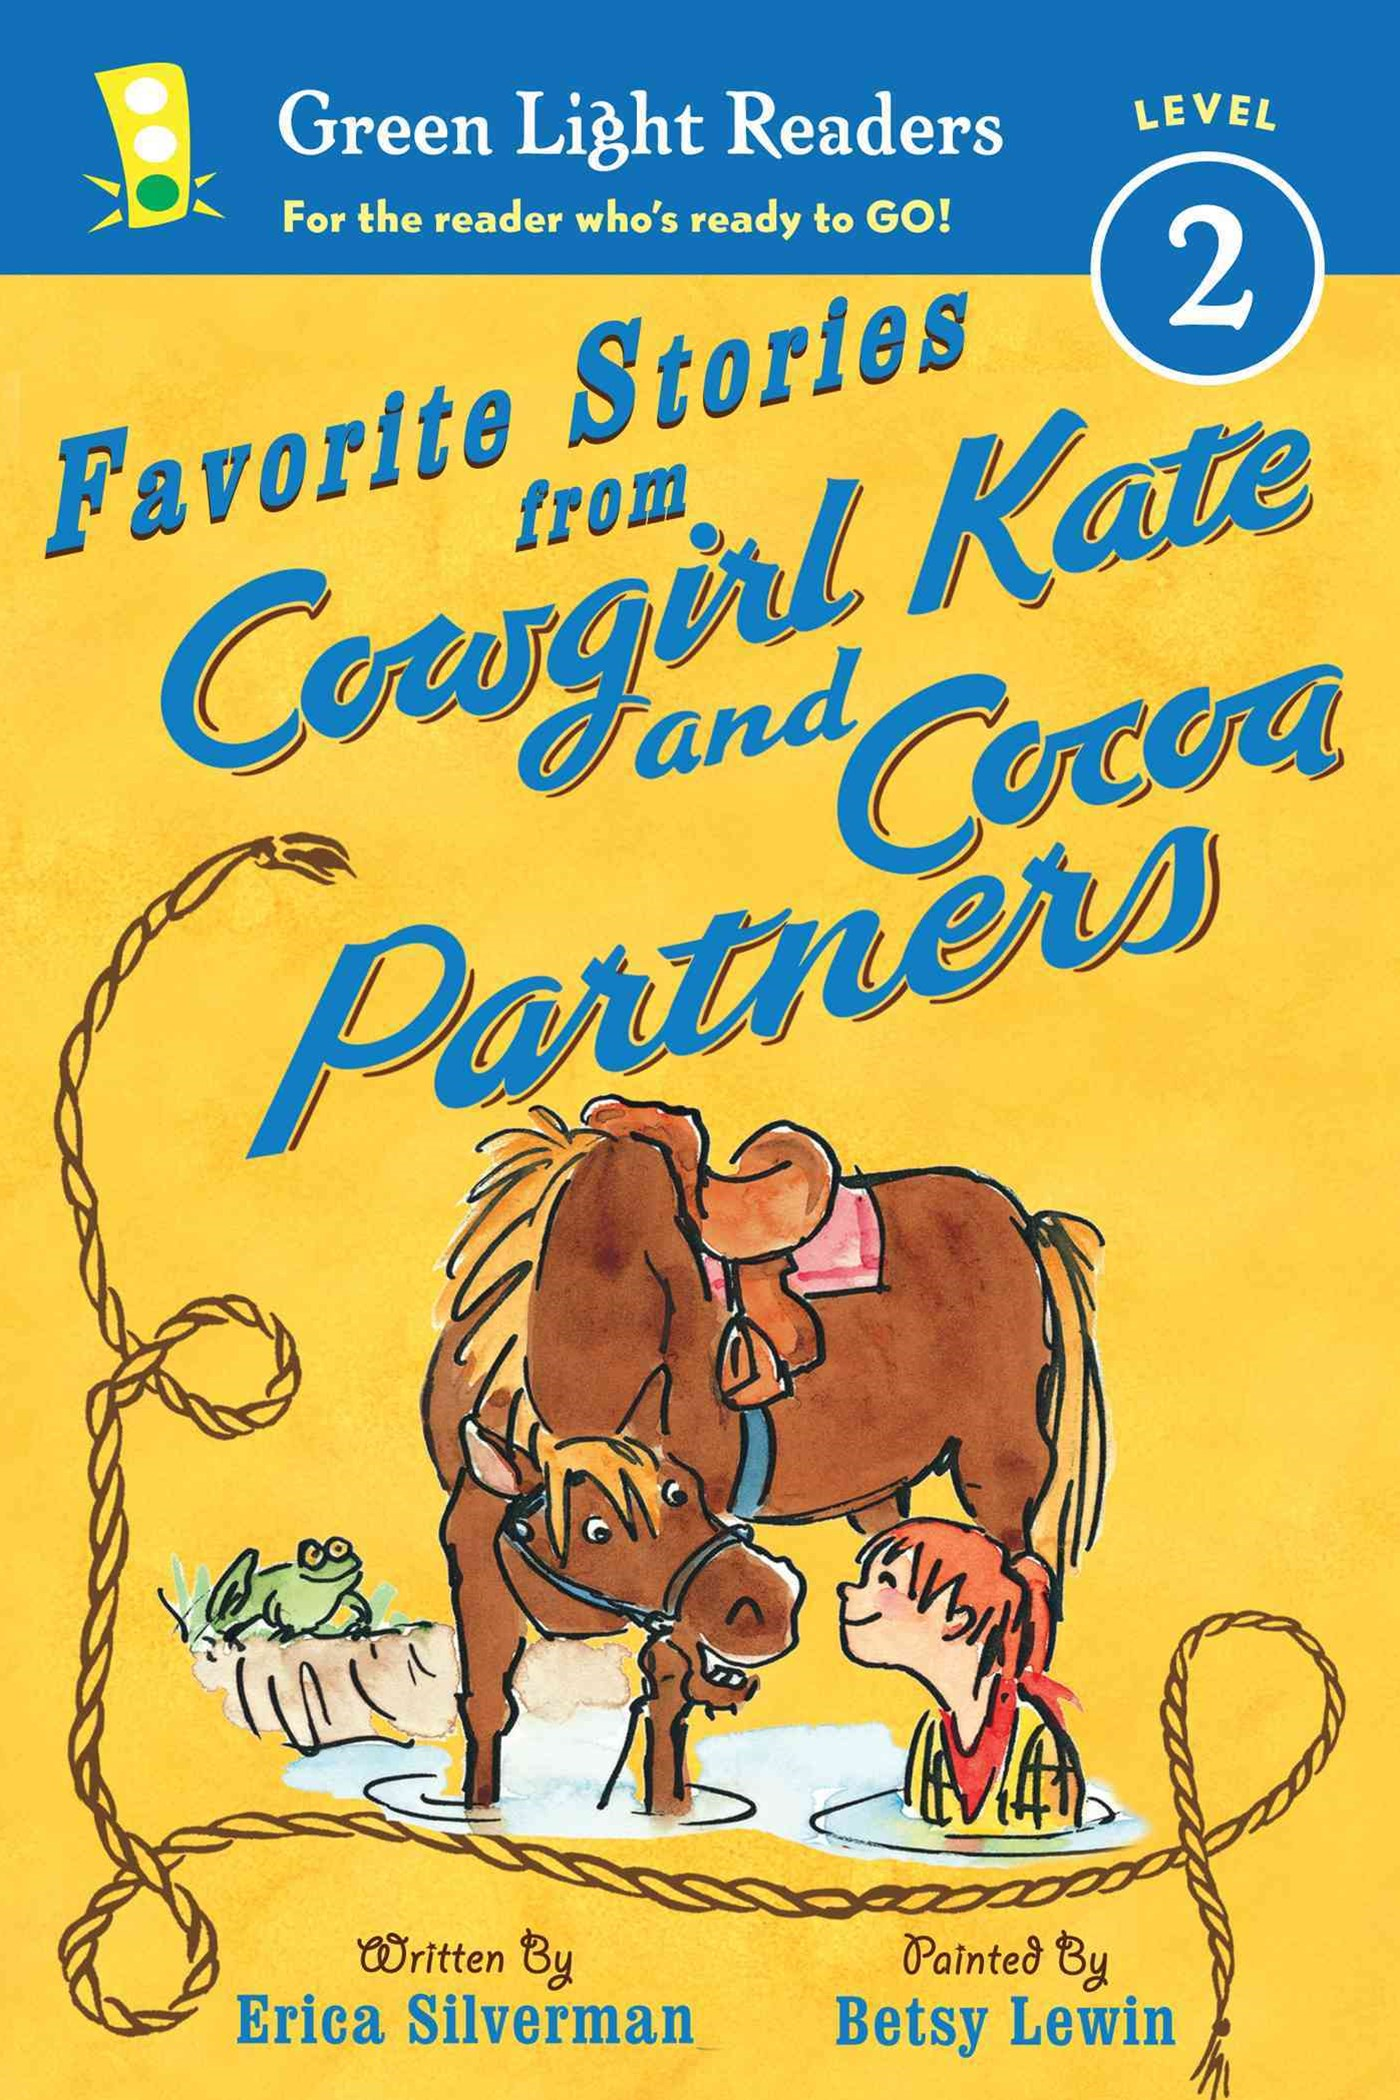 Favorite Stories from Cowgirl Kate and Cocoa: Partners GLR L2